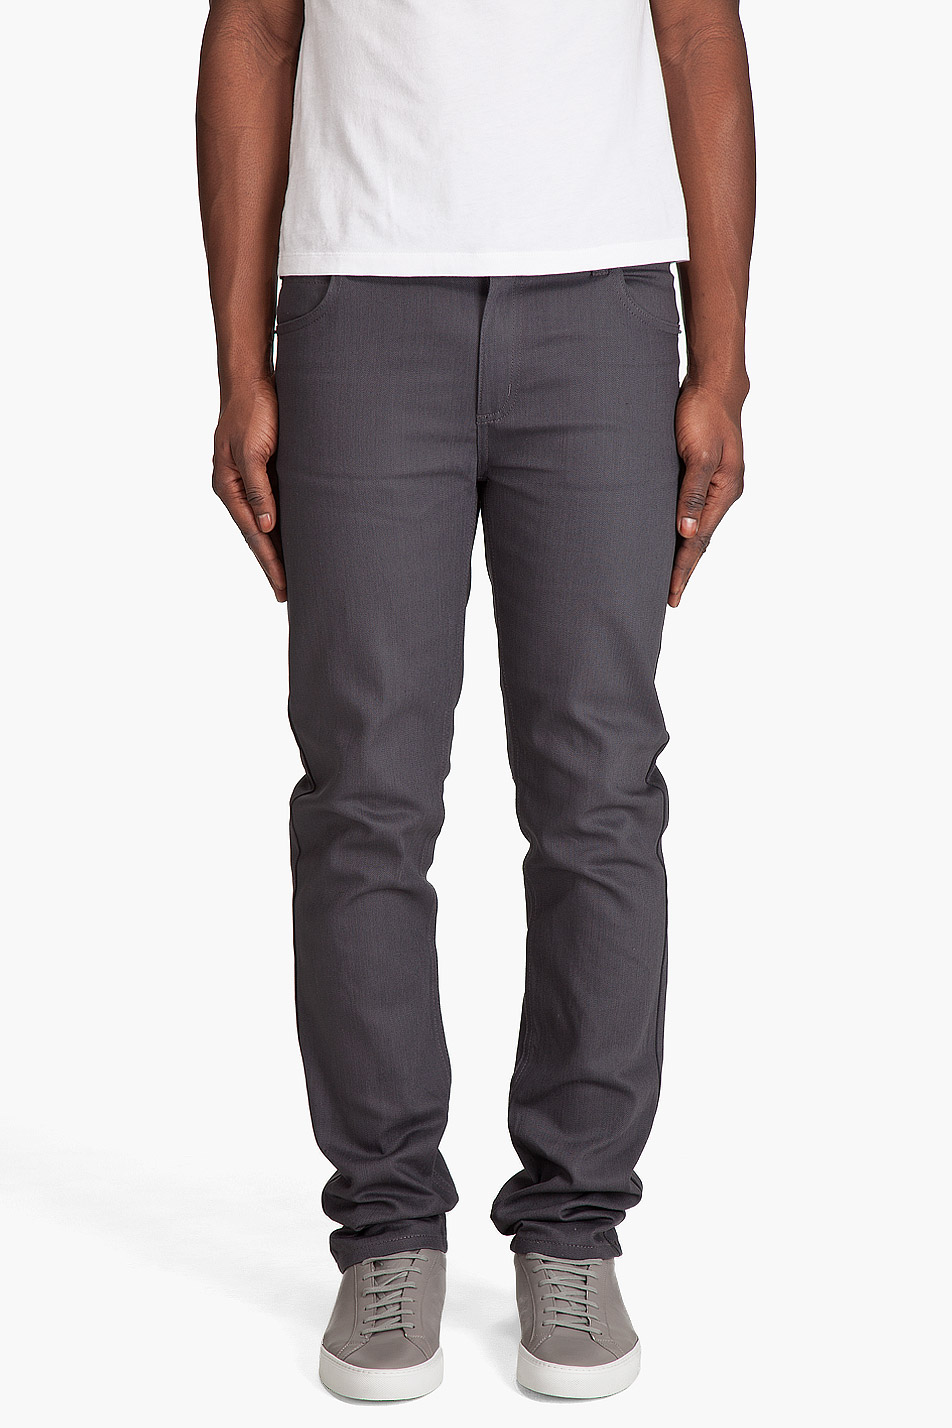 cheap monday premium tight jeans in gray for men grey lyst. Black Bedroom Furniture Sets. Home Design Ideas